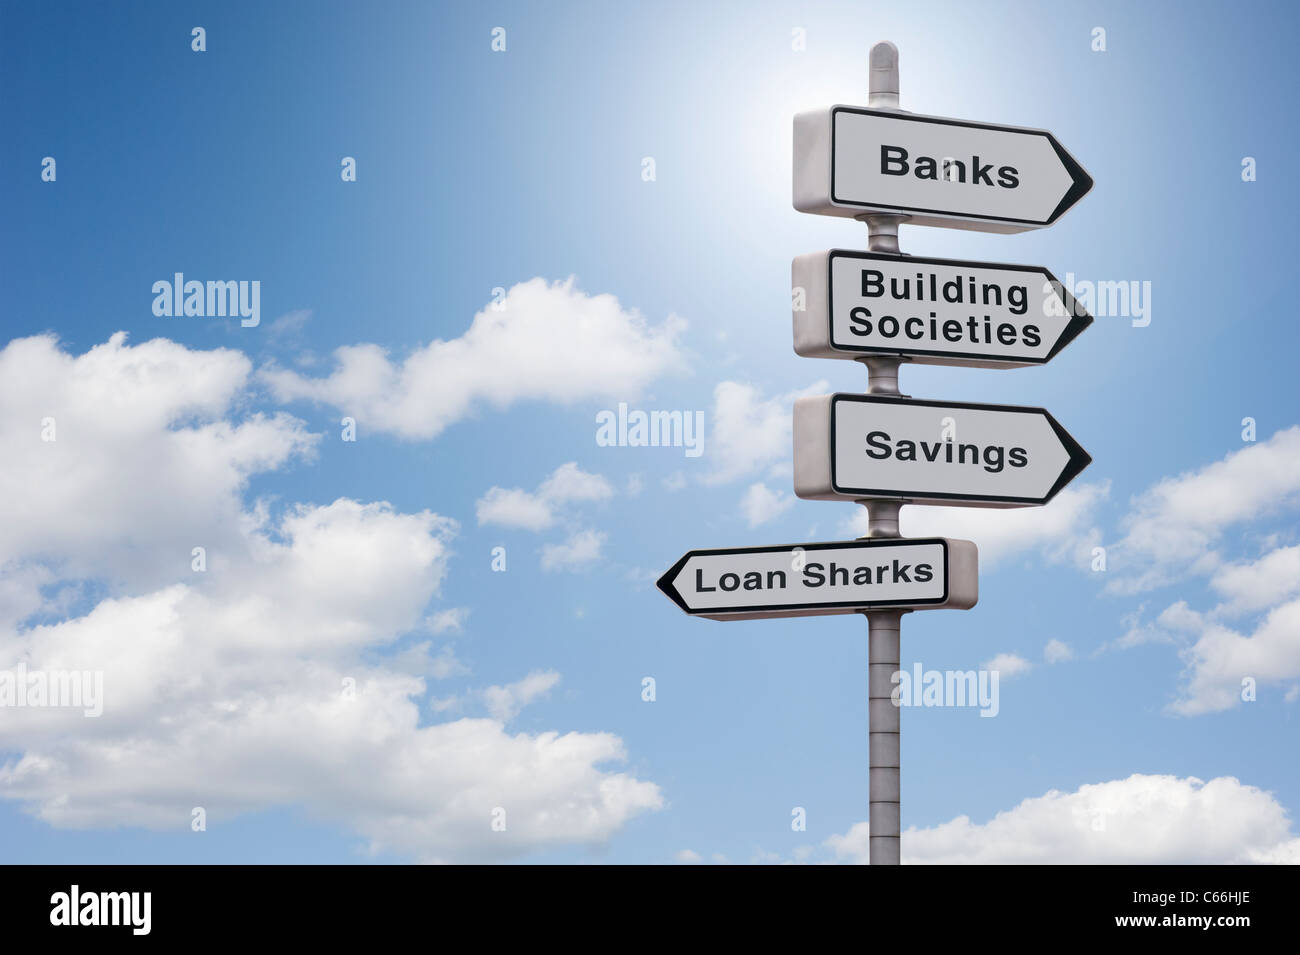 Sign with Banks, Building Societies, Savings pointing in one direction and Loan Sharks pointing in the other on - Stock Image